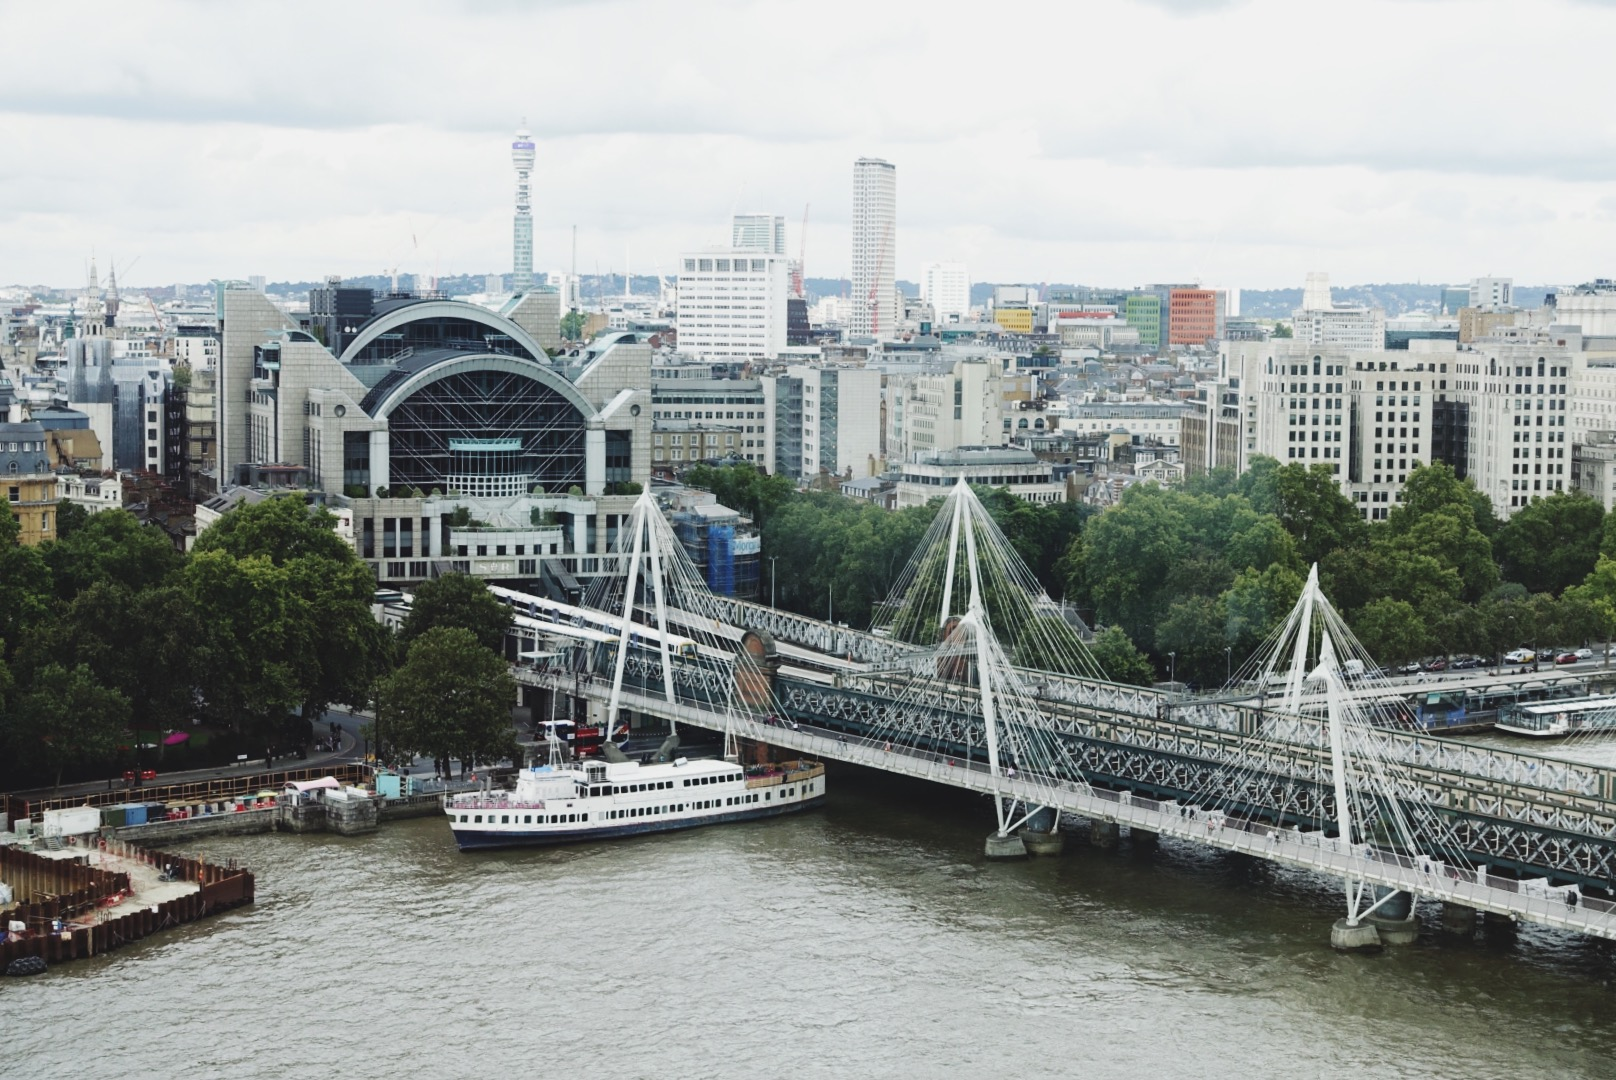 Charing Cross train station from the London Eye. Such a cool building.